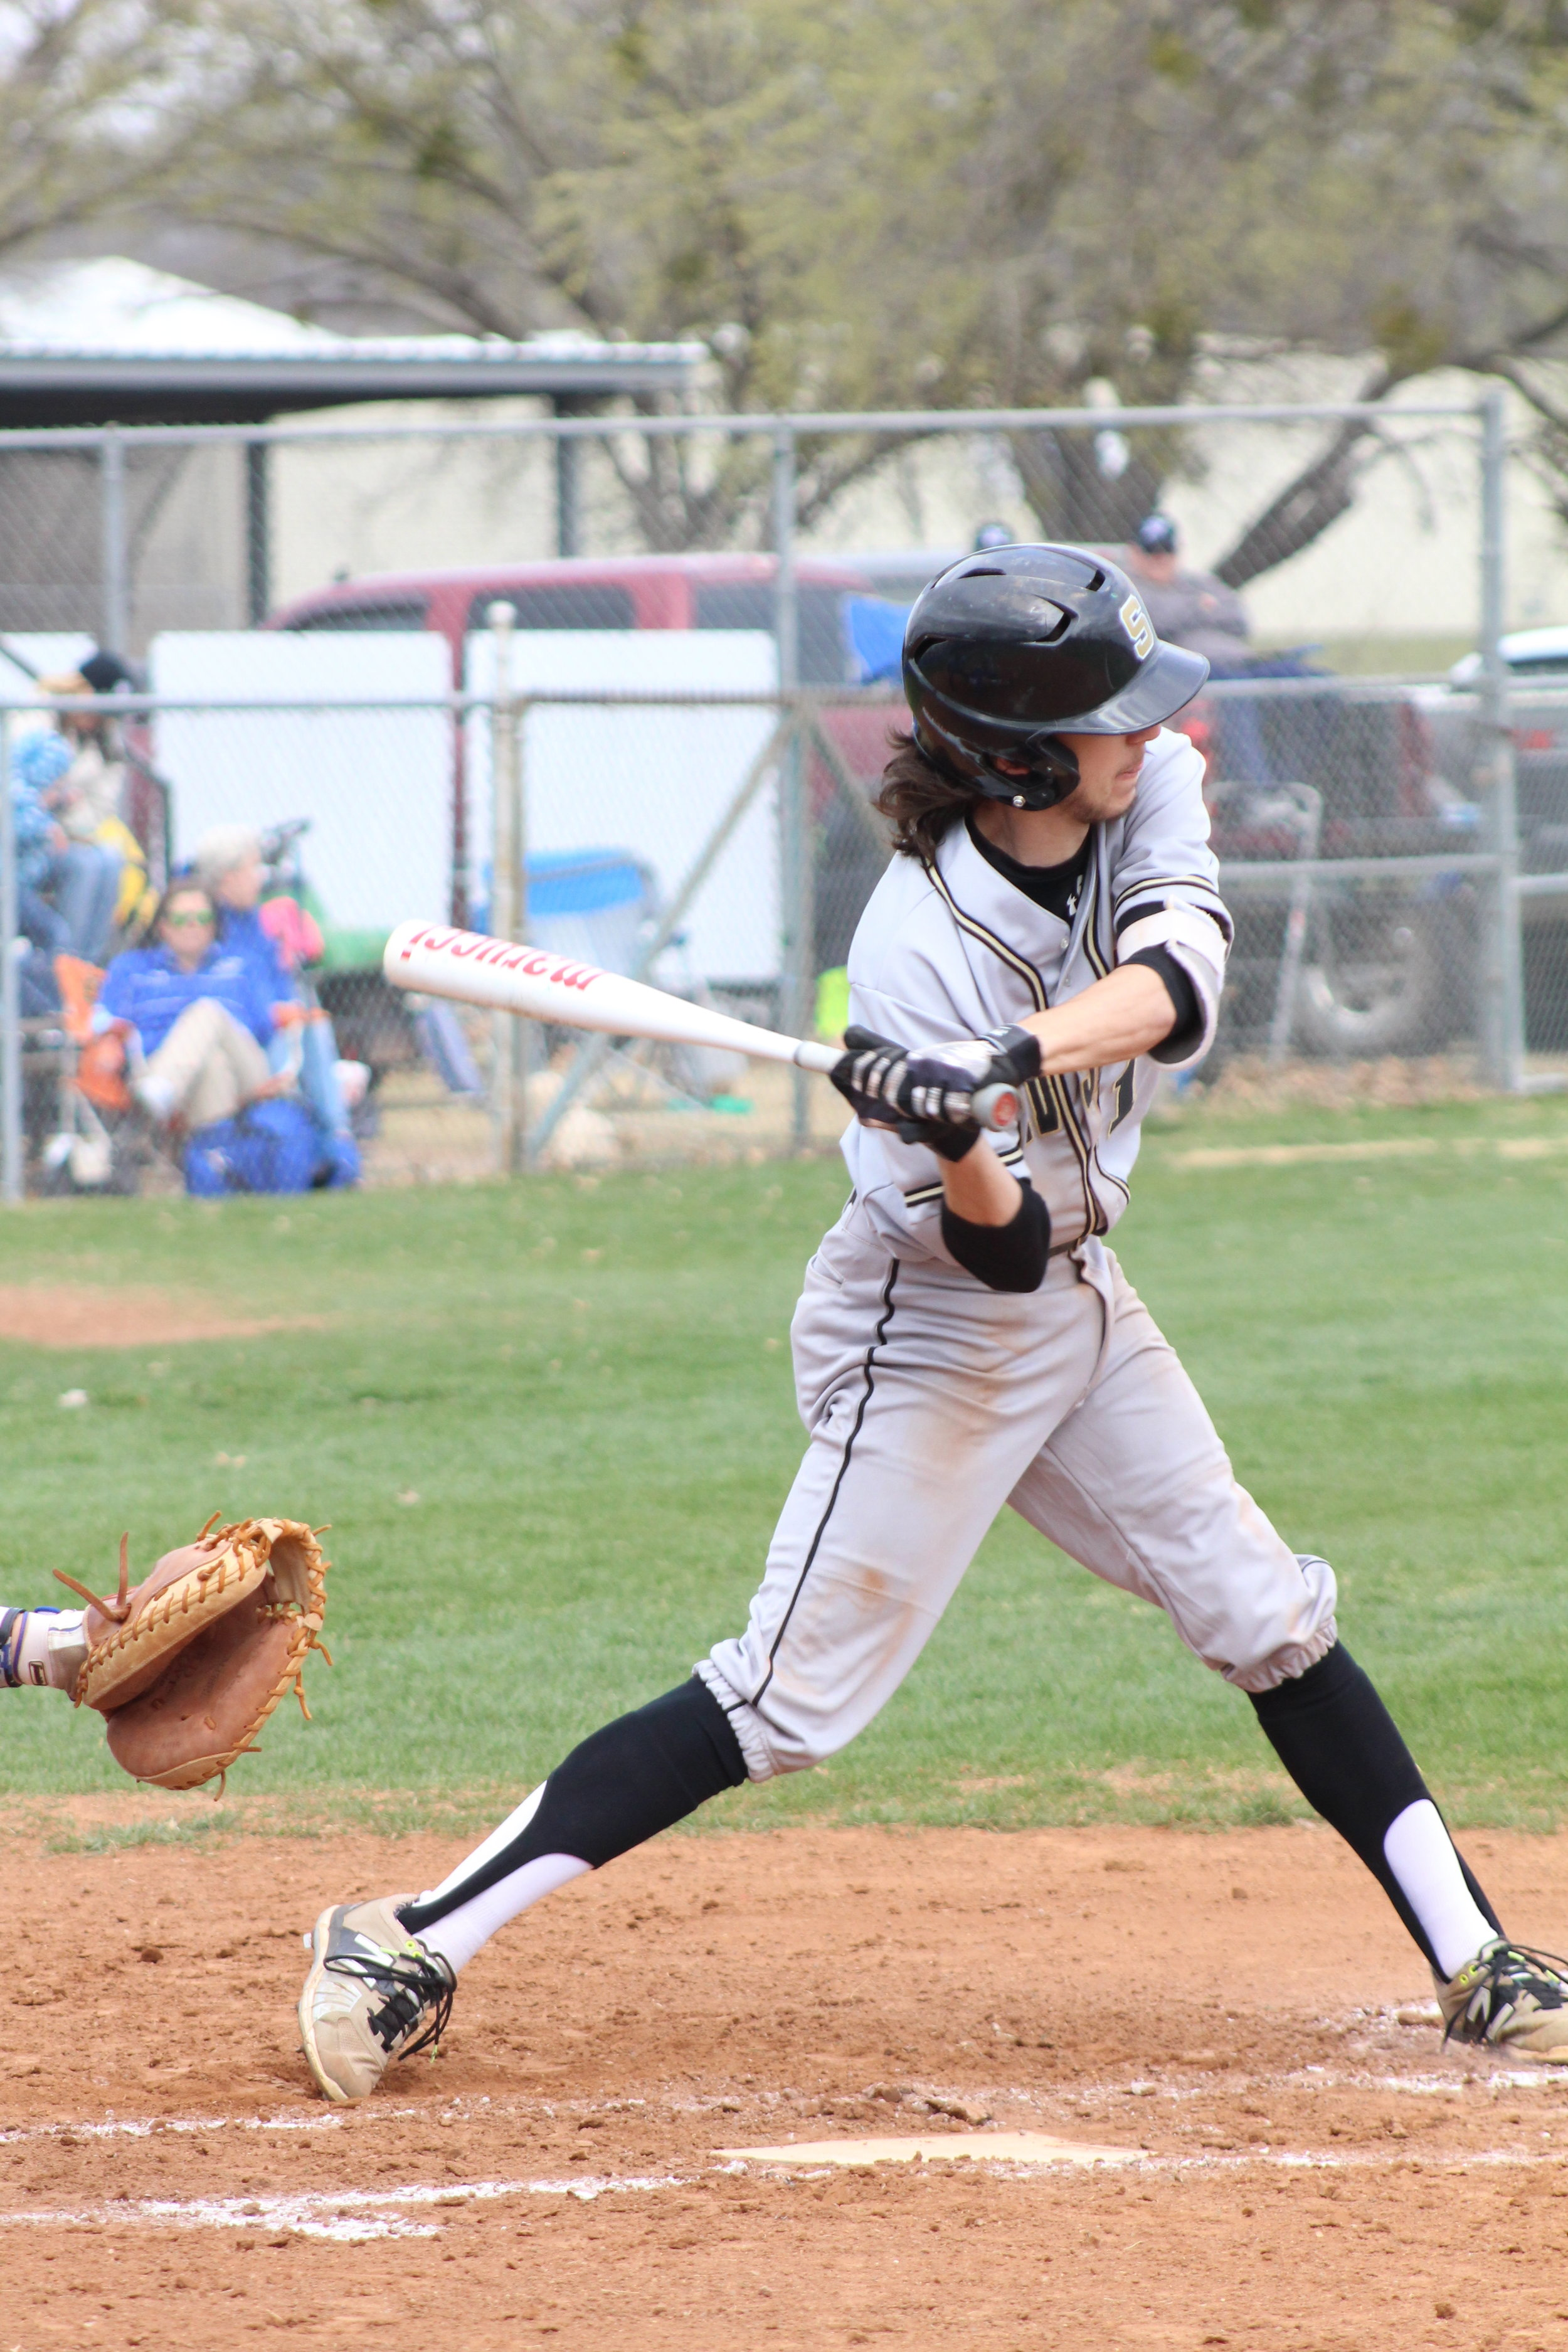 Senior shortstop Mack Thompson is the only Sandite to land a base hit in all three games this season. (Photo: Scott Emigh).